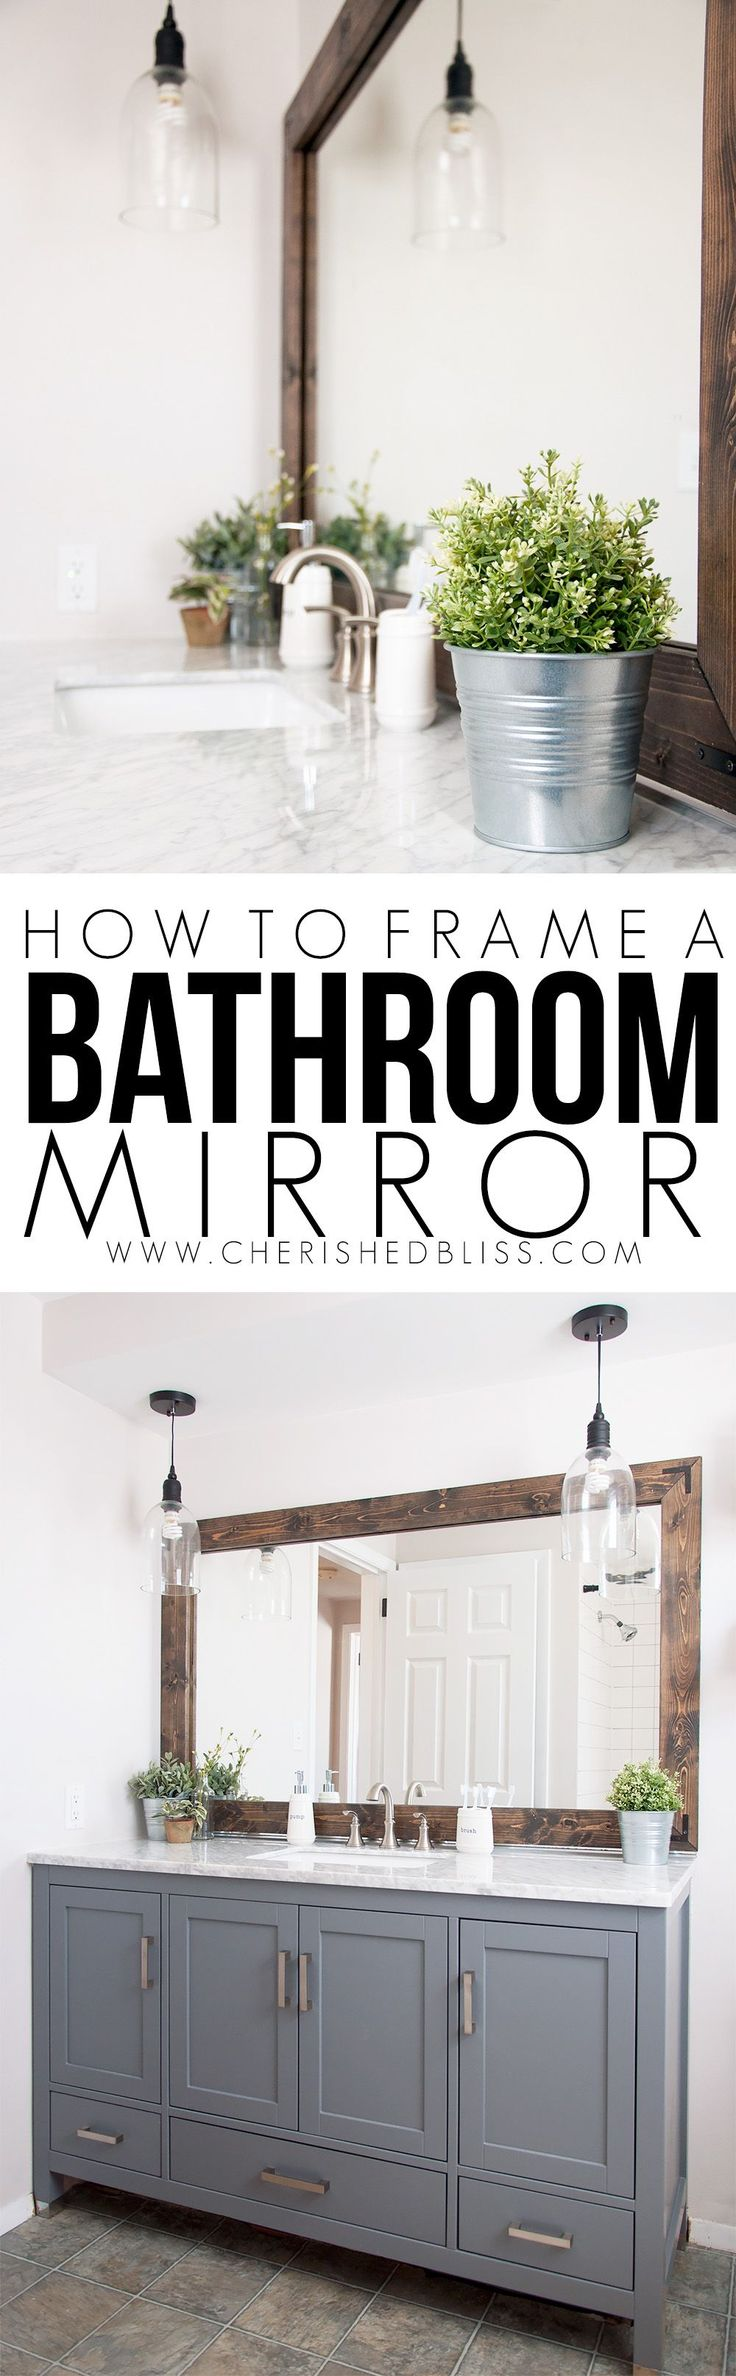 Framed Bathroom Mirrors Cheap best 25+ framed bathroom mirrors ideas on pinterest | framing a